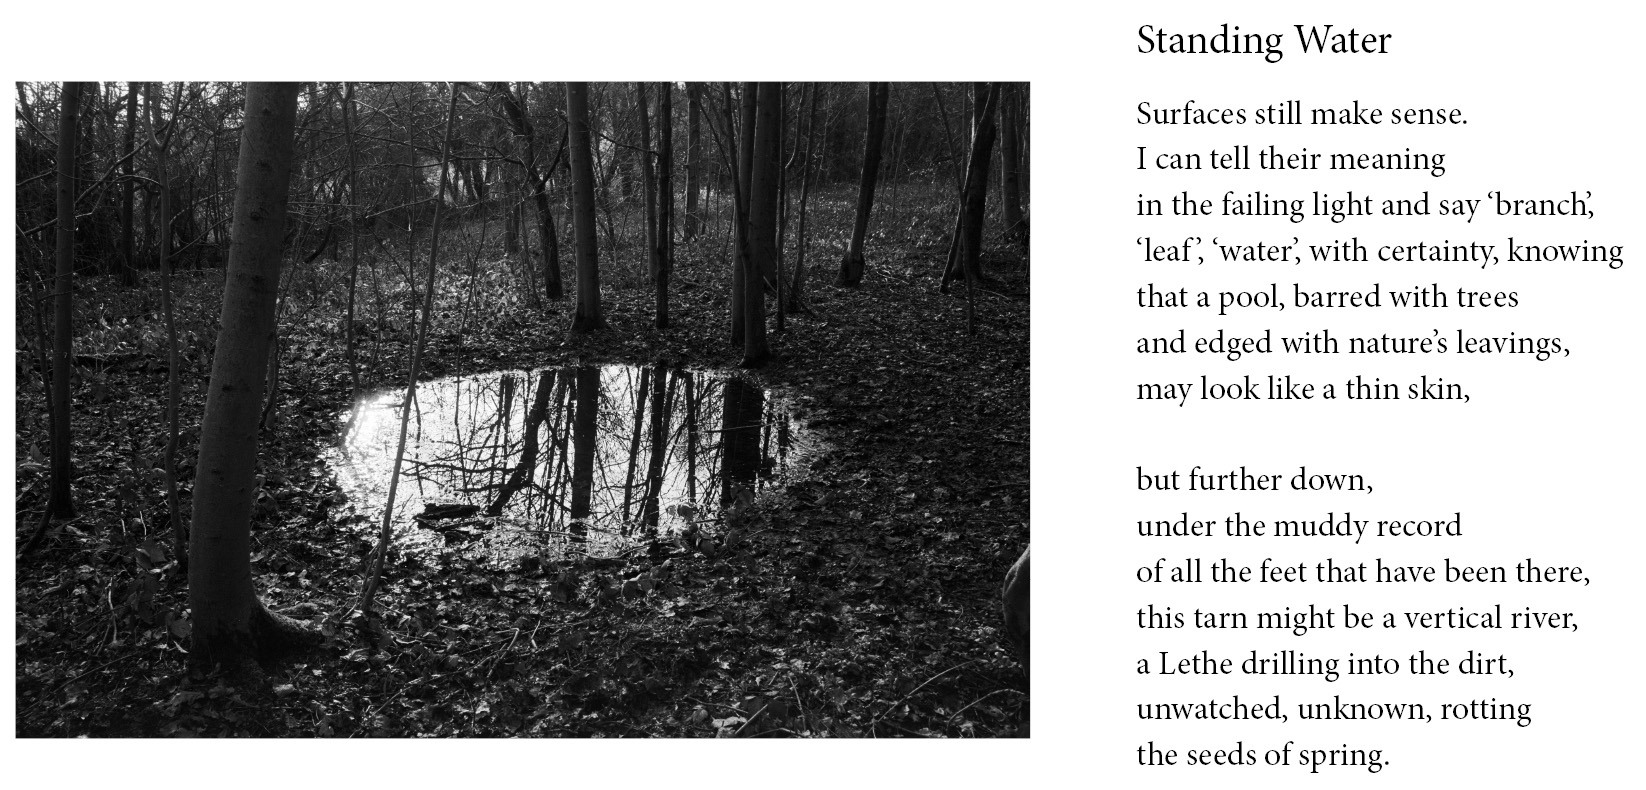 Standing Water from Tonewood by Lawrence Impey & Sue Rose, 2019.